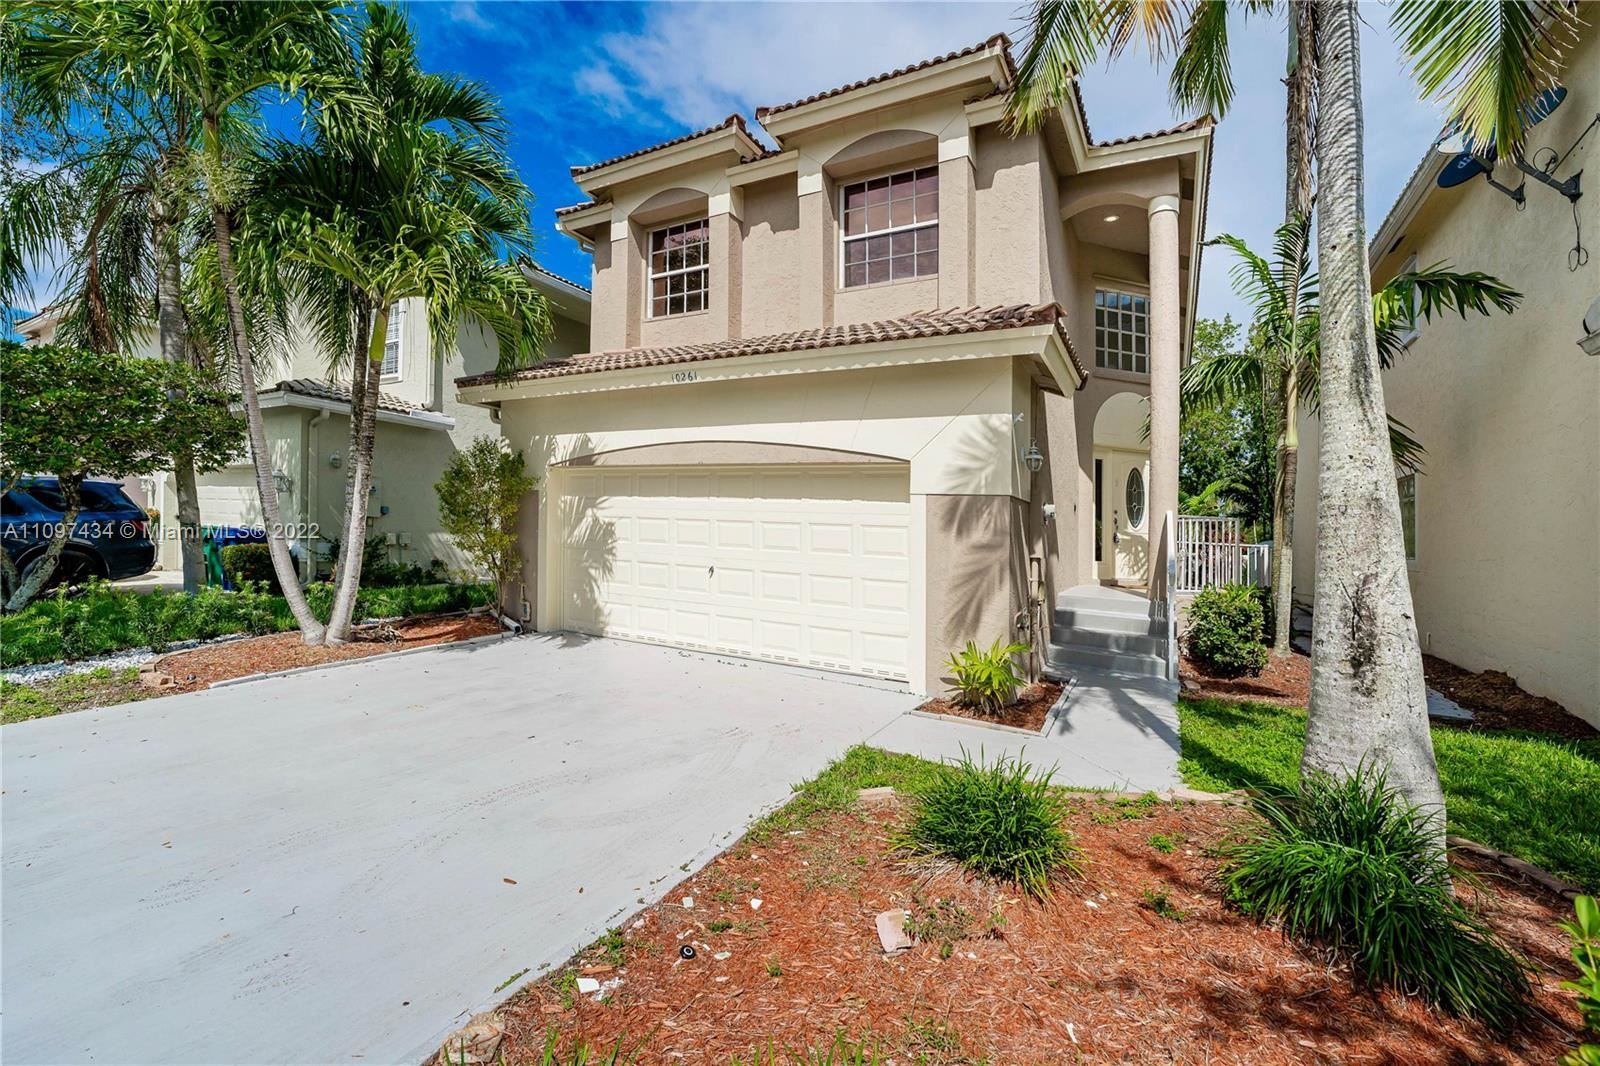 10261 NW 7th St, Coral Springs, FL 33071 - #: A11097434